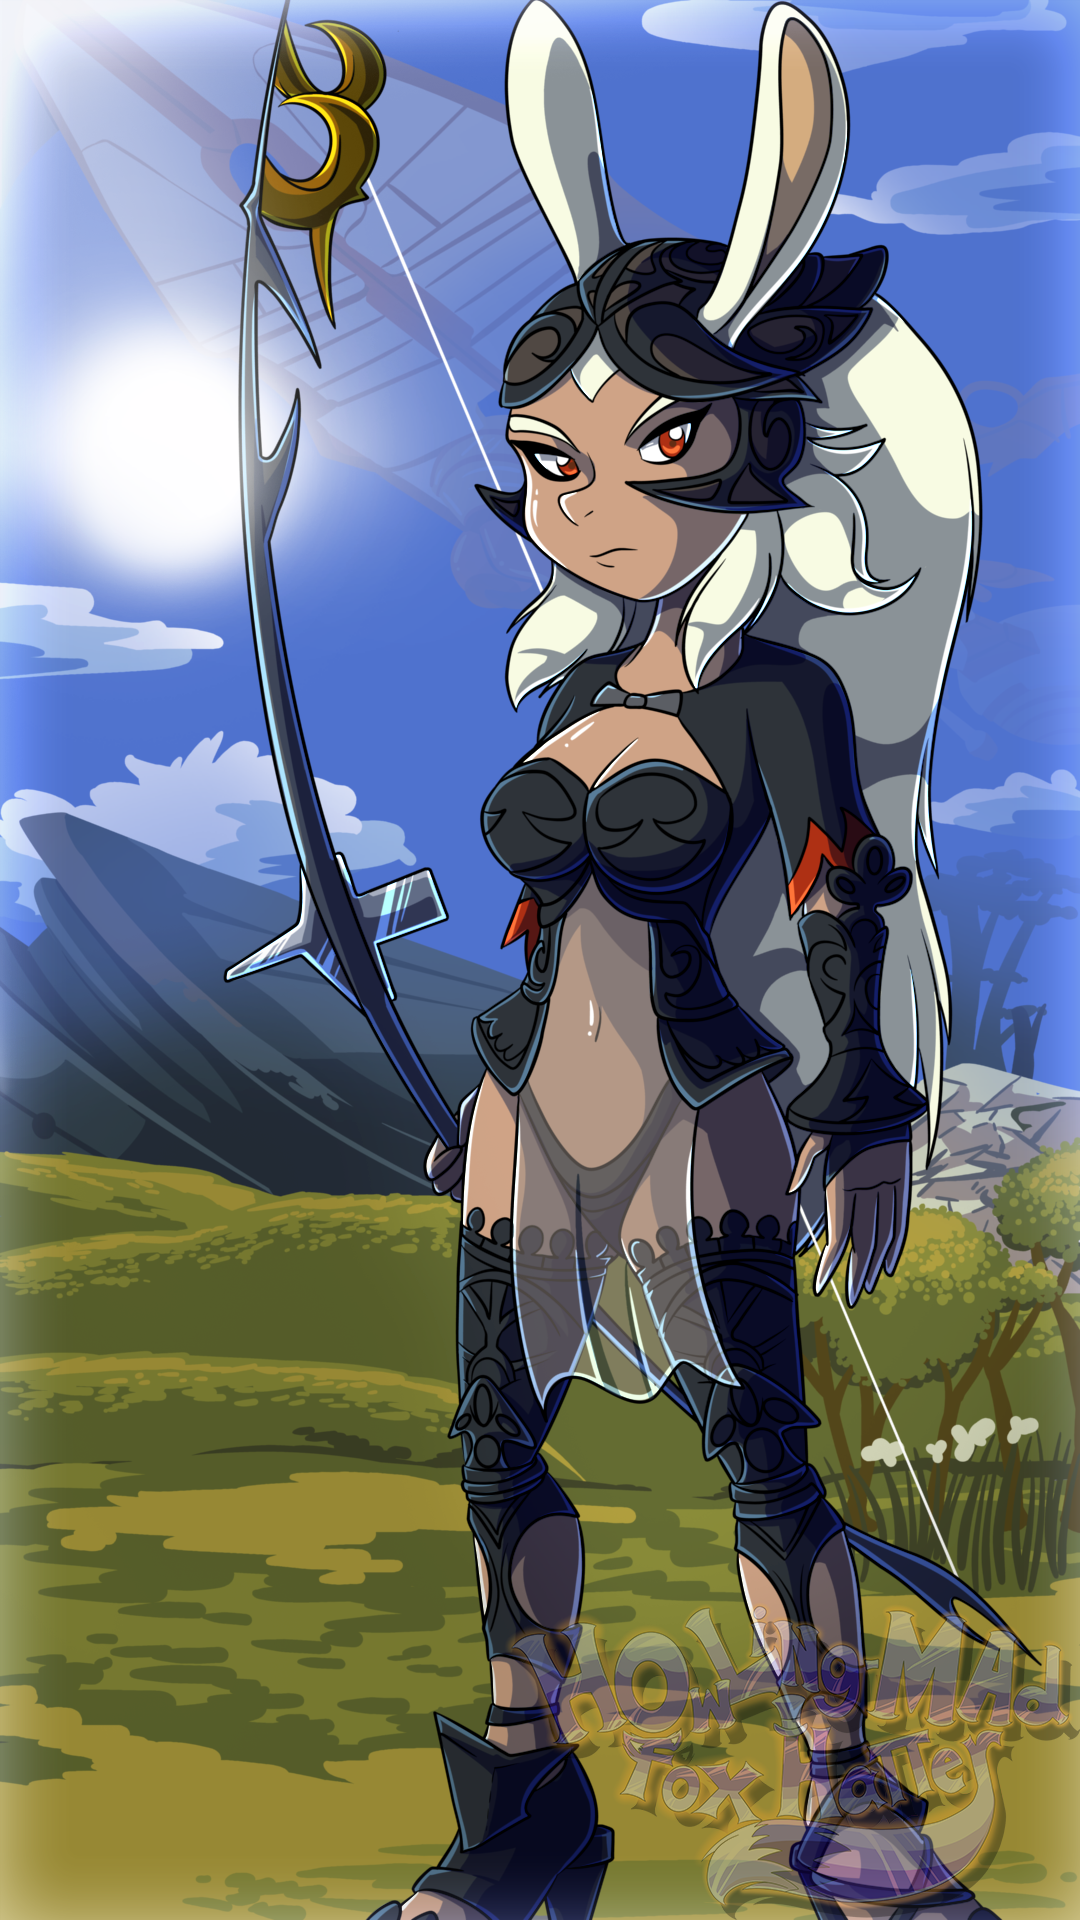 A Viera on the Plains